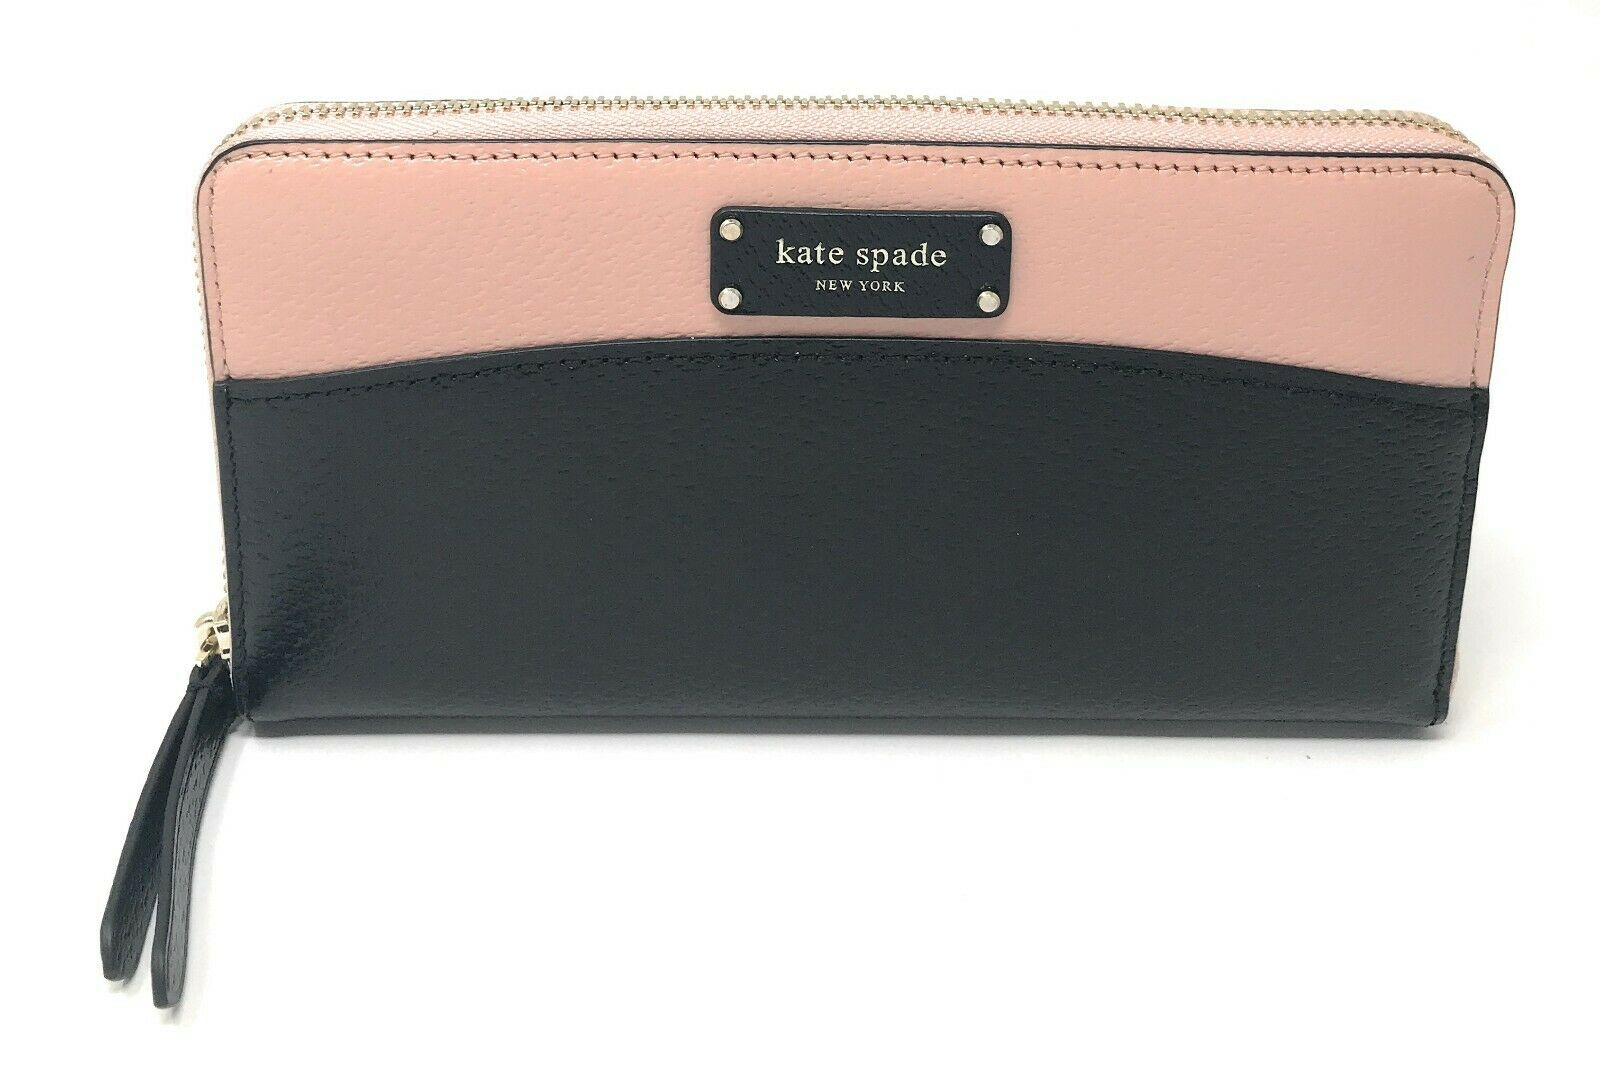 Kate Spade Jeanne Large Continental Wallet Zip Around Leather Clutch $189